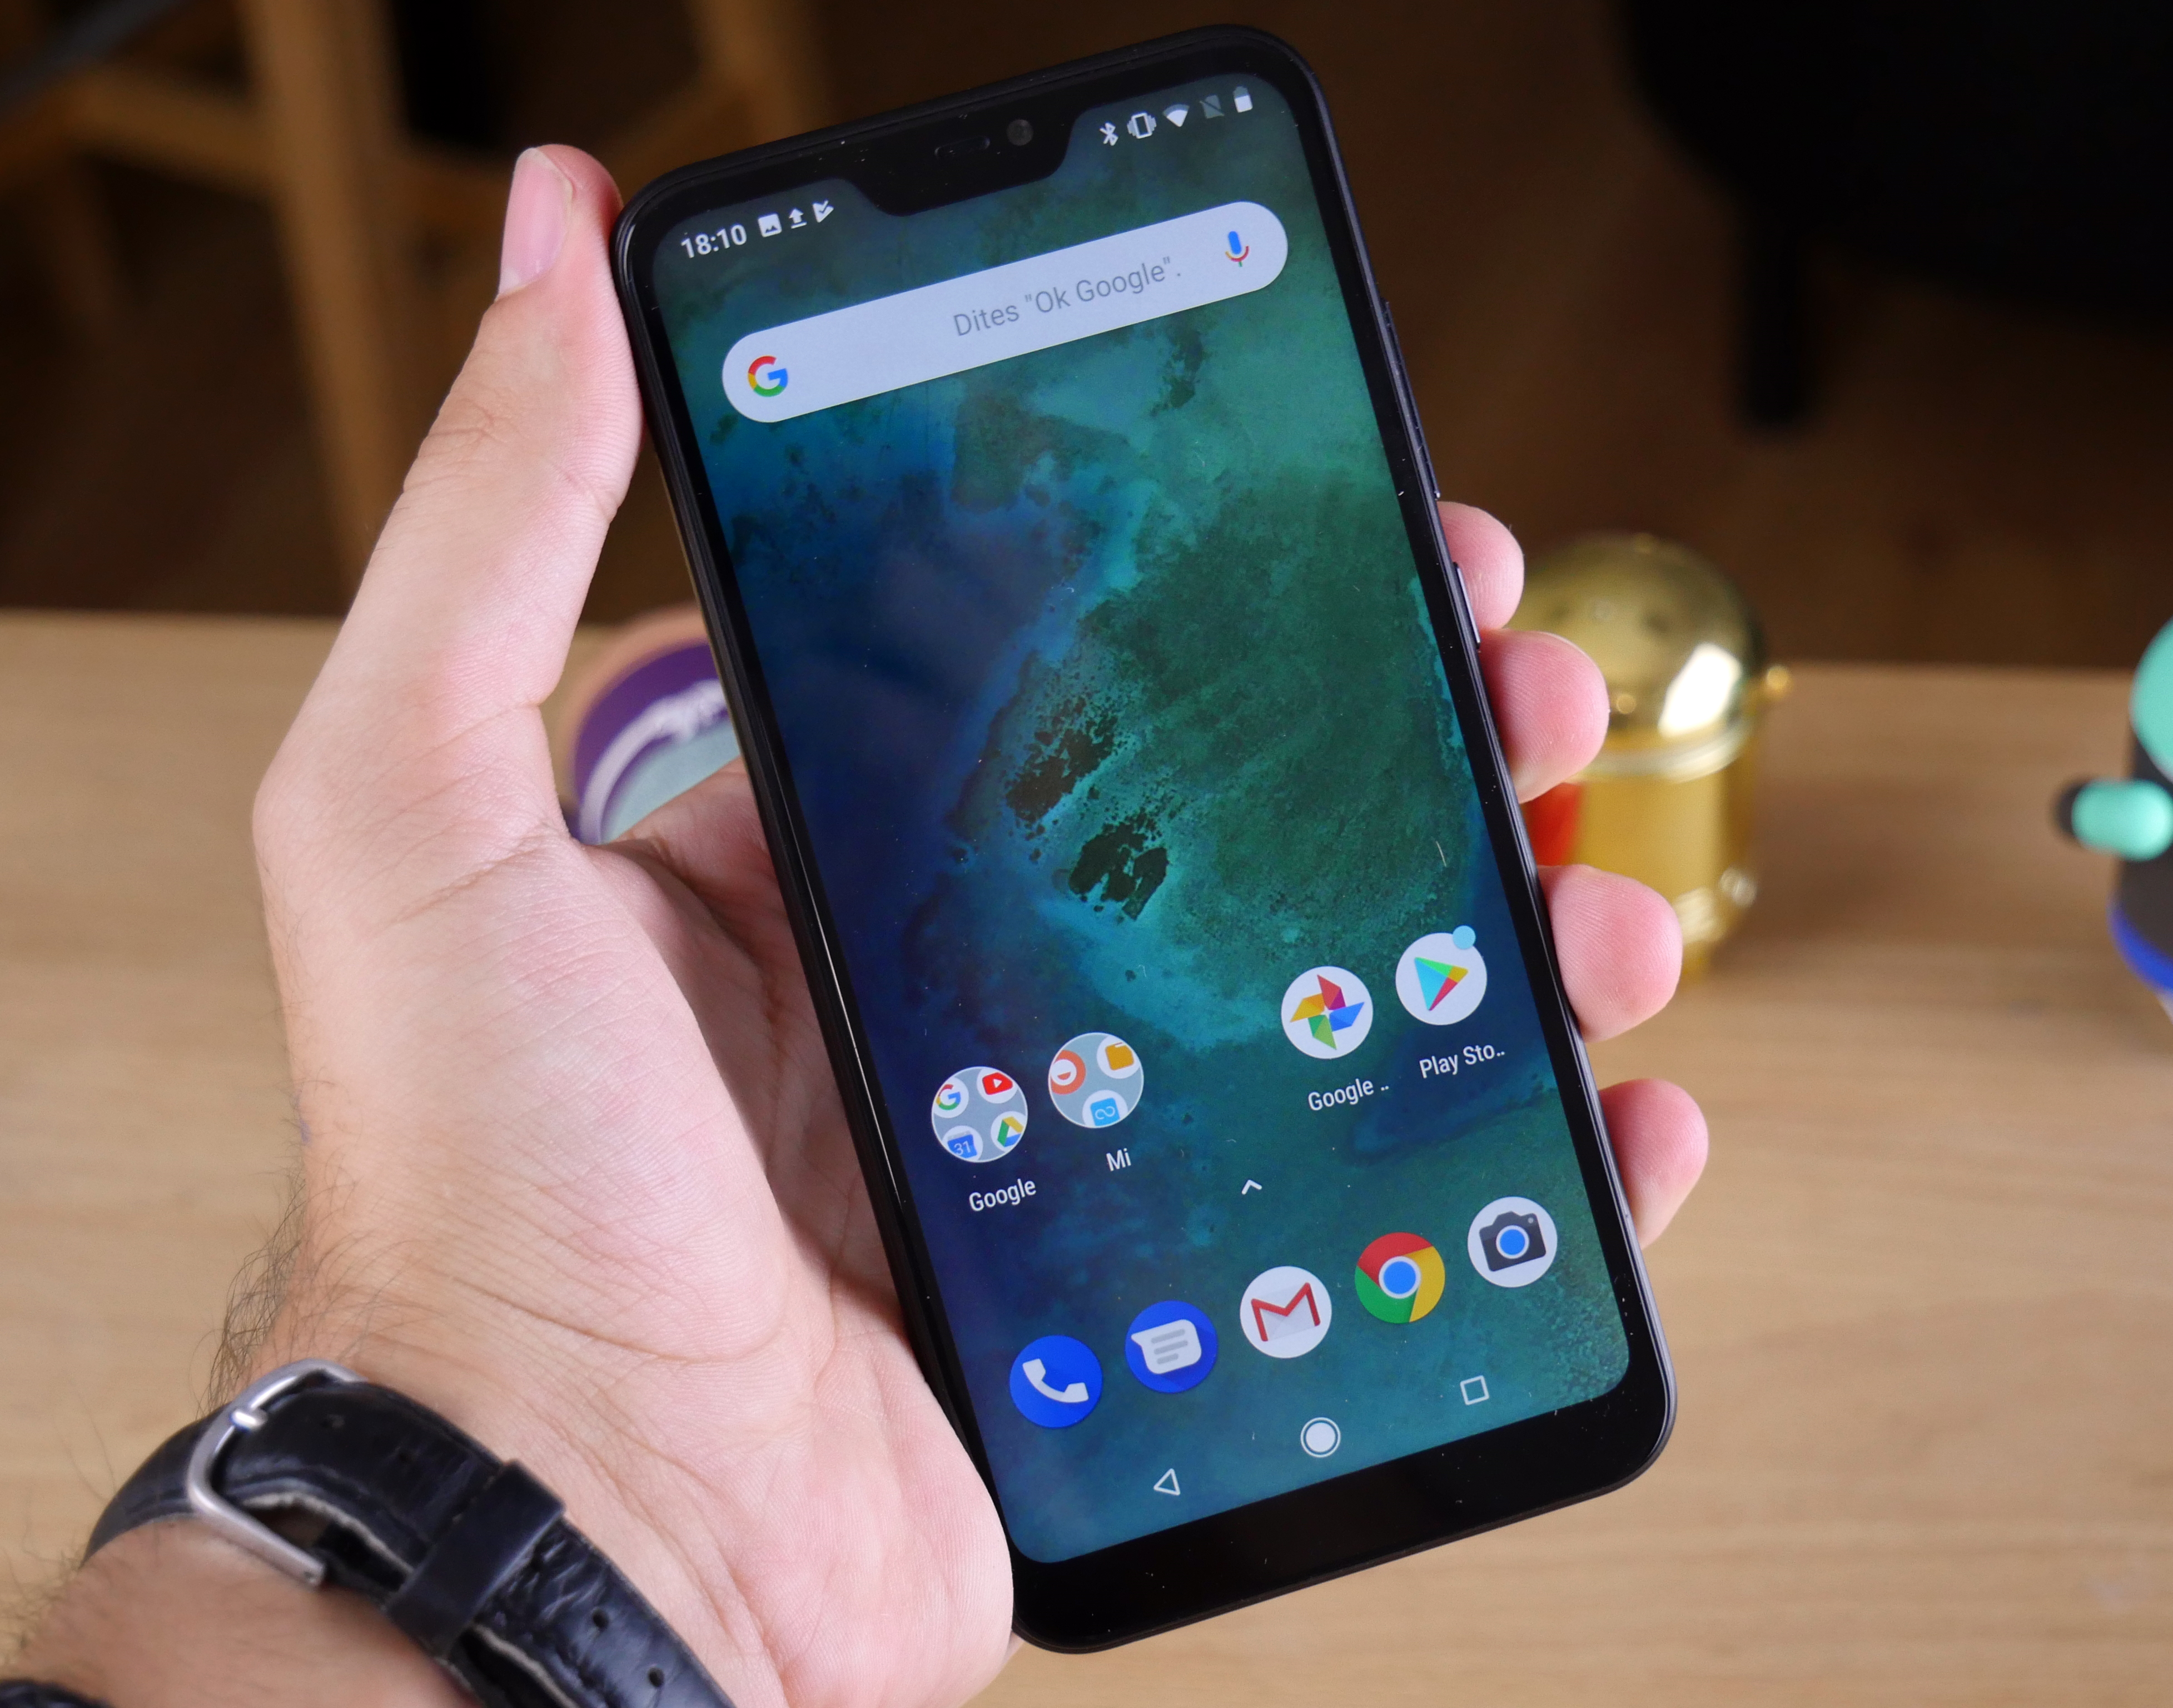 Xiaomi fuels speculation that it has binned the Mi A2 Lite after just one OS upgrade - Notebookcheck.net